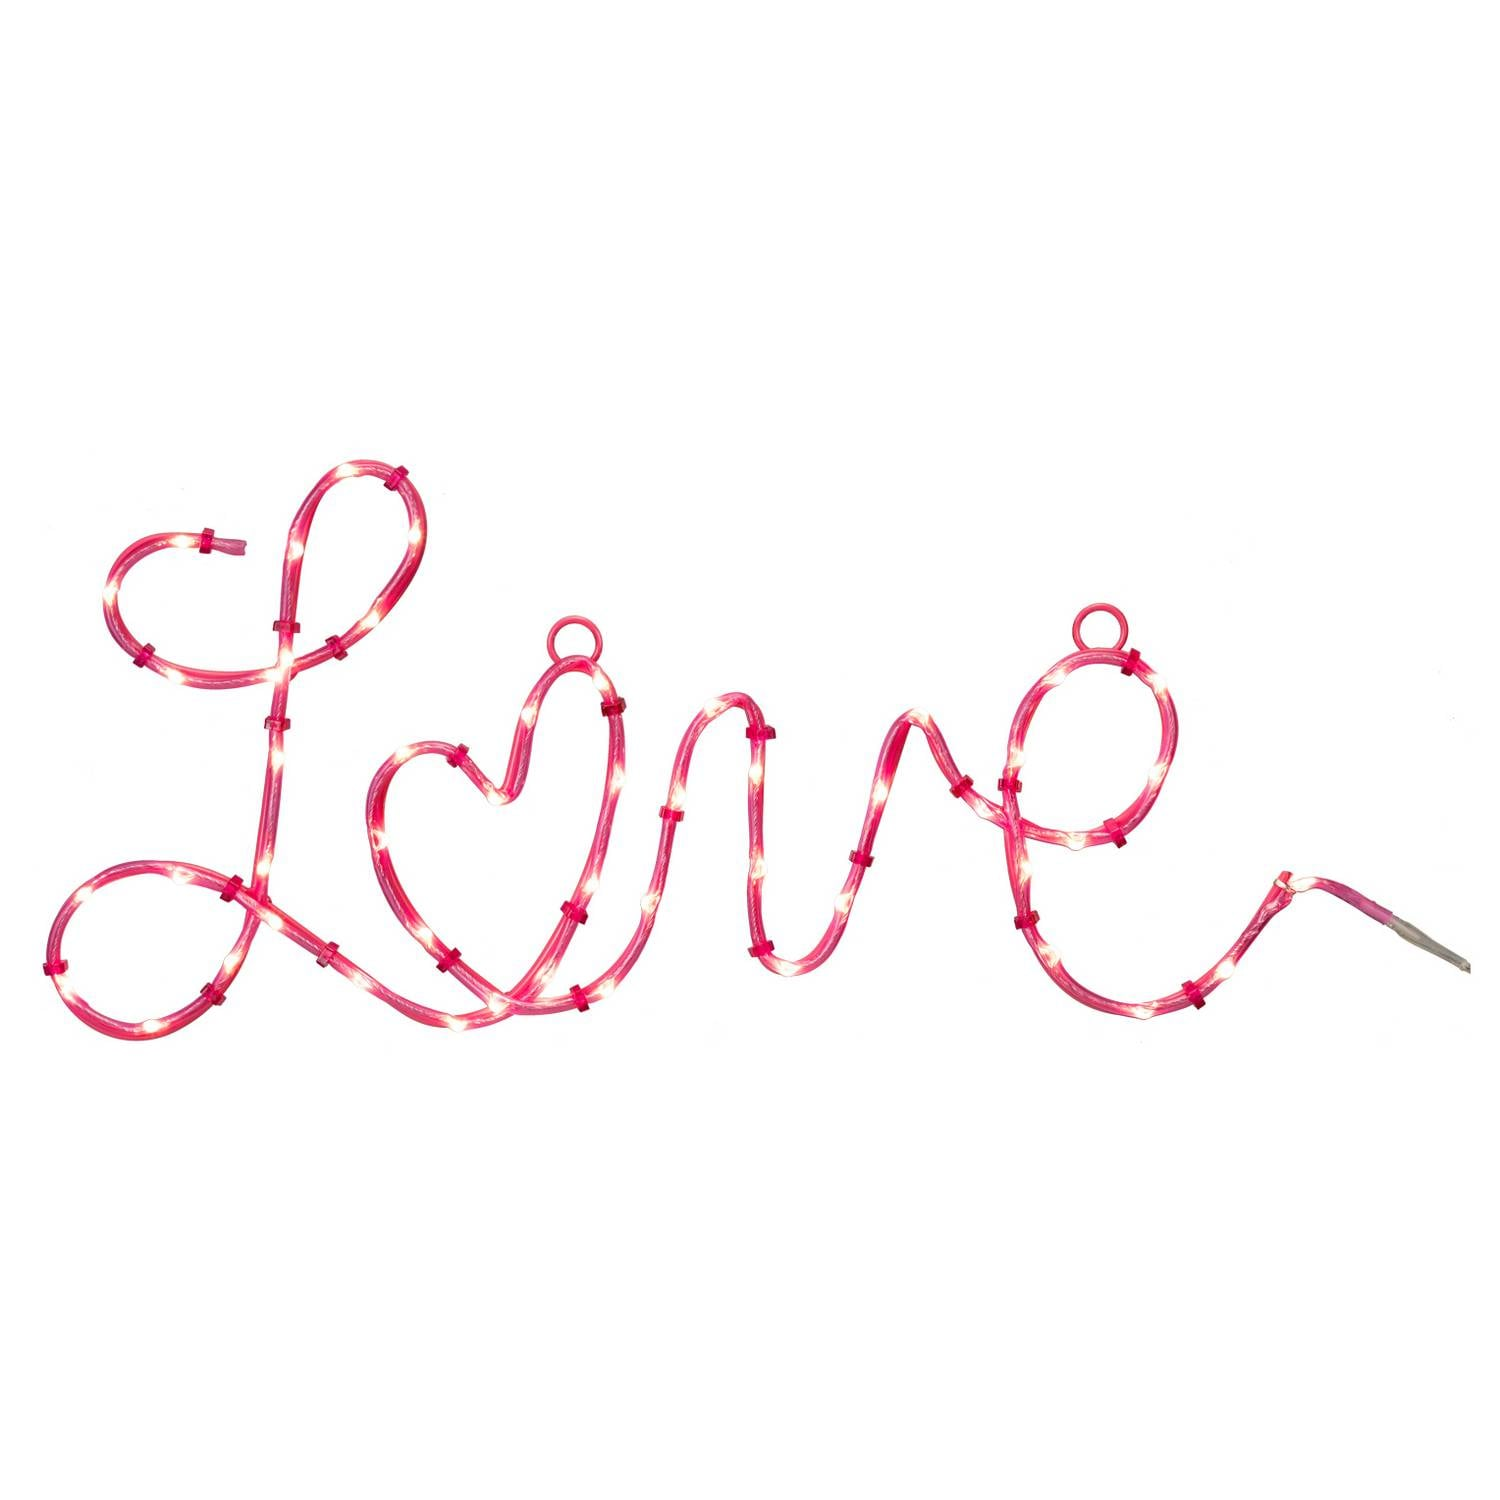 Love Cursive Lit Decor 41 Sweet Valentine S Day Products At Target All For Under 20 Popsugar Smart Living Photo 2 Get the best deals on cursive love bracelet and save up to 70% off at poshmark now! love cursive lit decor 41 sweet